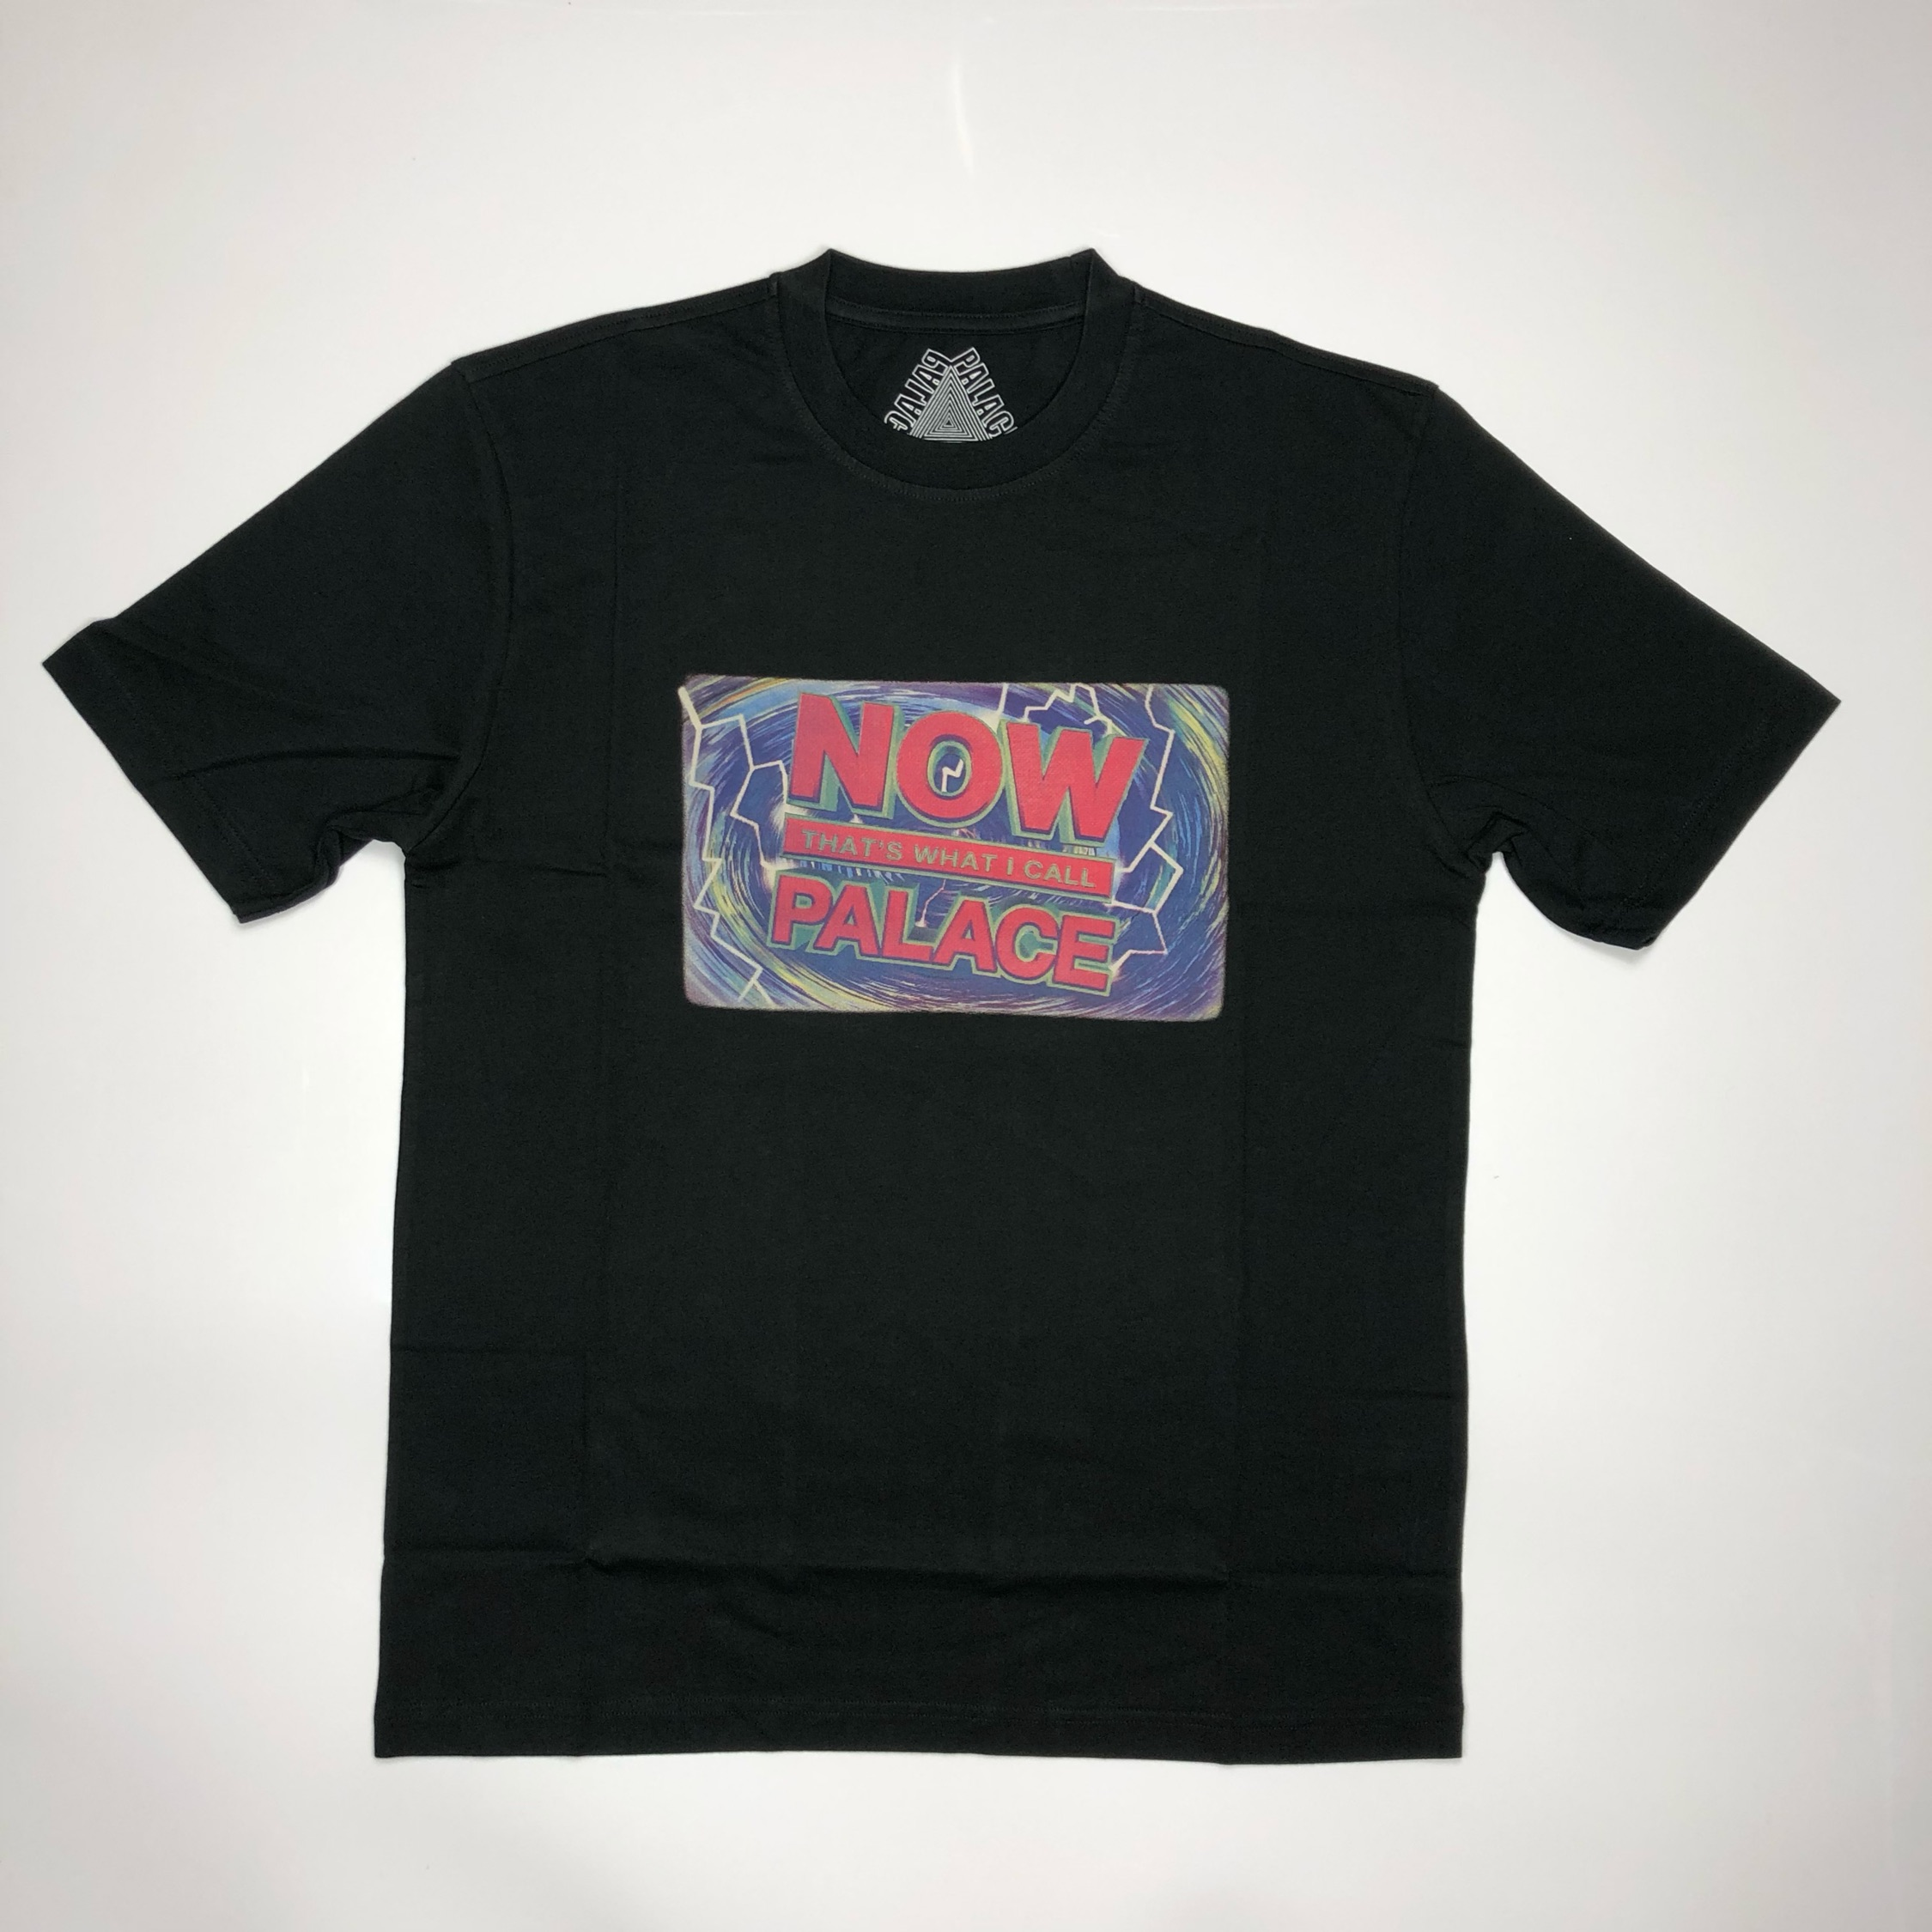 Palace Now That's What I Call Palace T Shirt Small